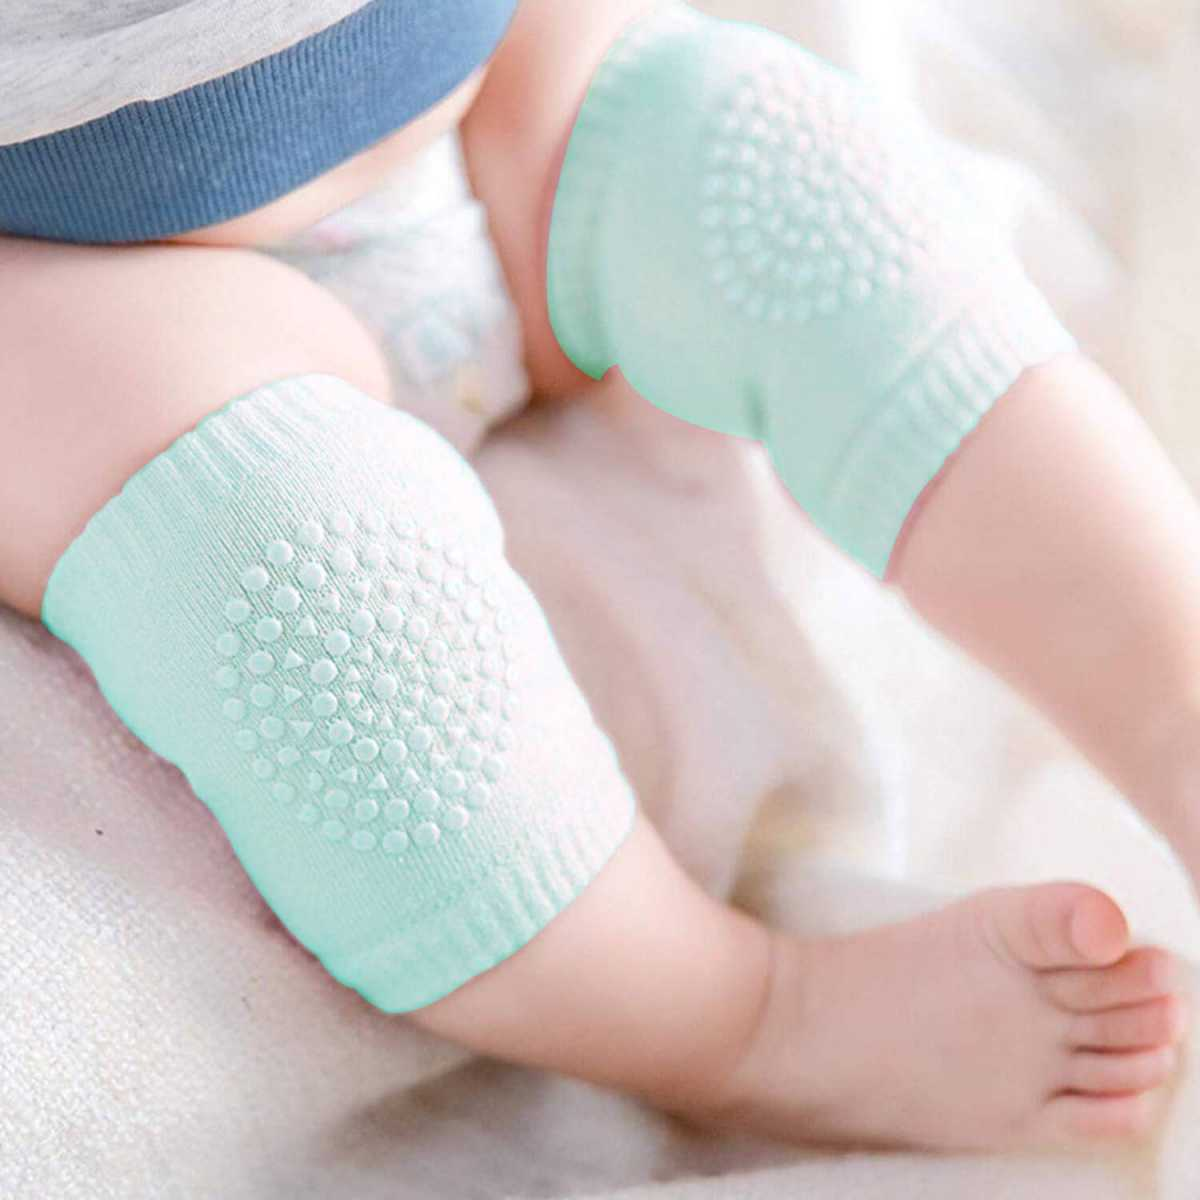 Silver Shine Baby Knee Pads Safety Stretchable Anti-Slip Padded Soft Cotton Breathable Comfortable Knee(1 Pair,Assorted Color )